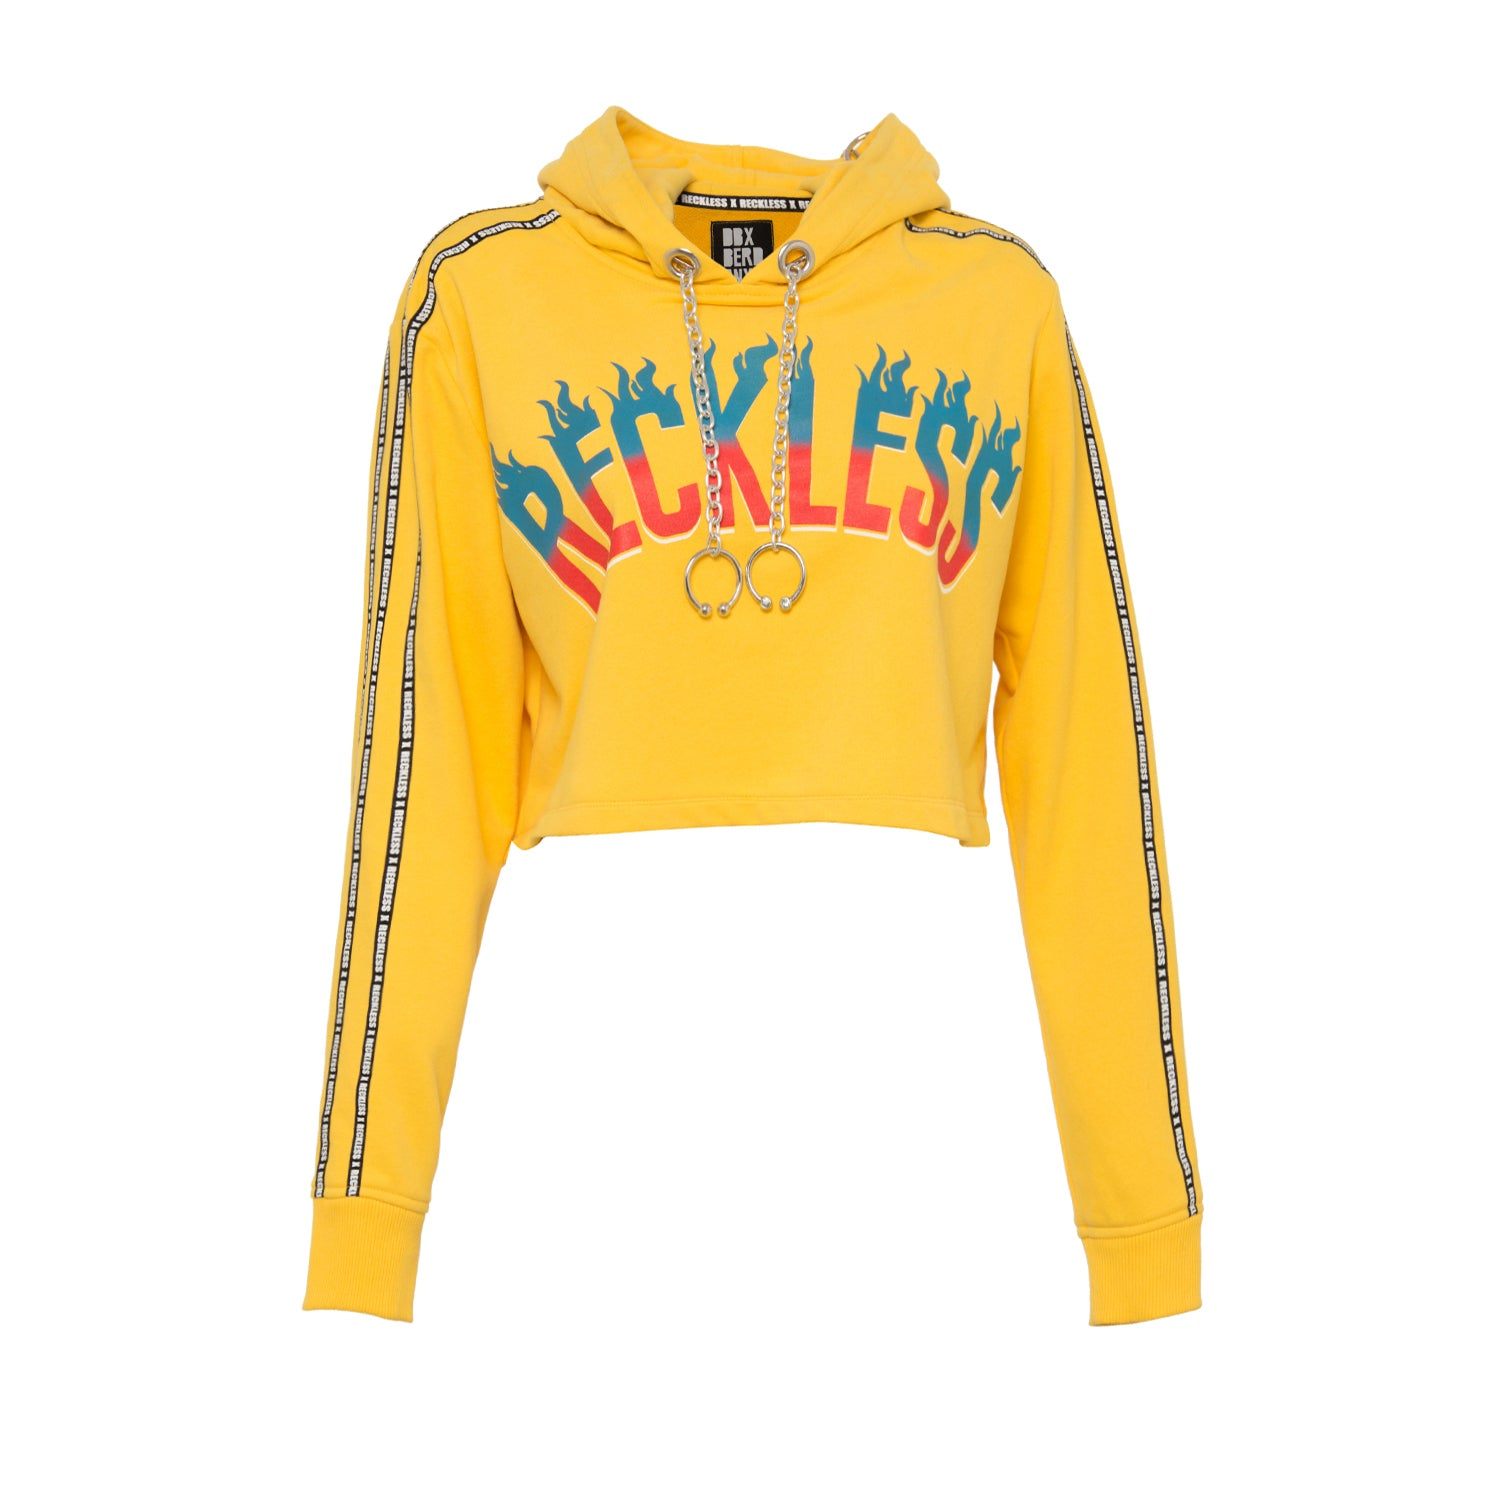 HOT AND RECKLESS YELLOW CROPPED SWEATSHIRT